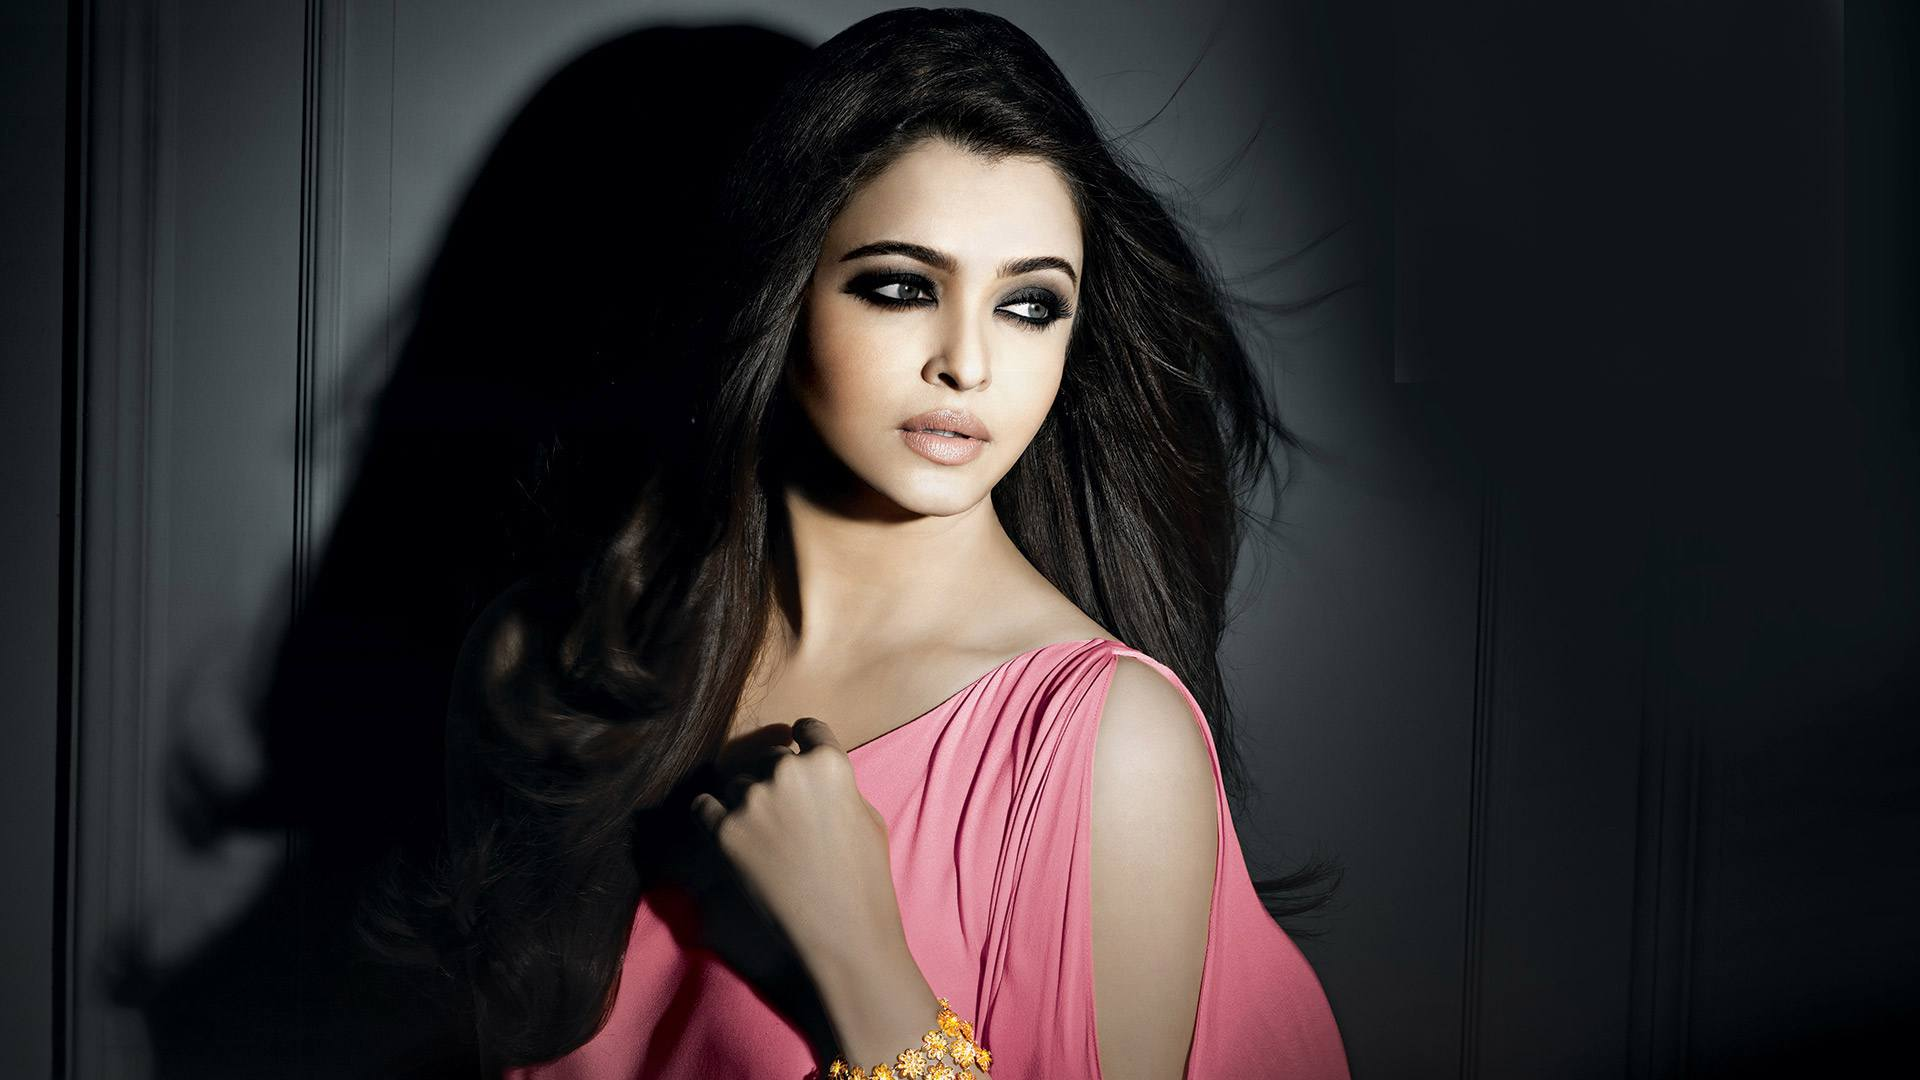 aishwarya_rai-wallpaper_2147483660